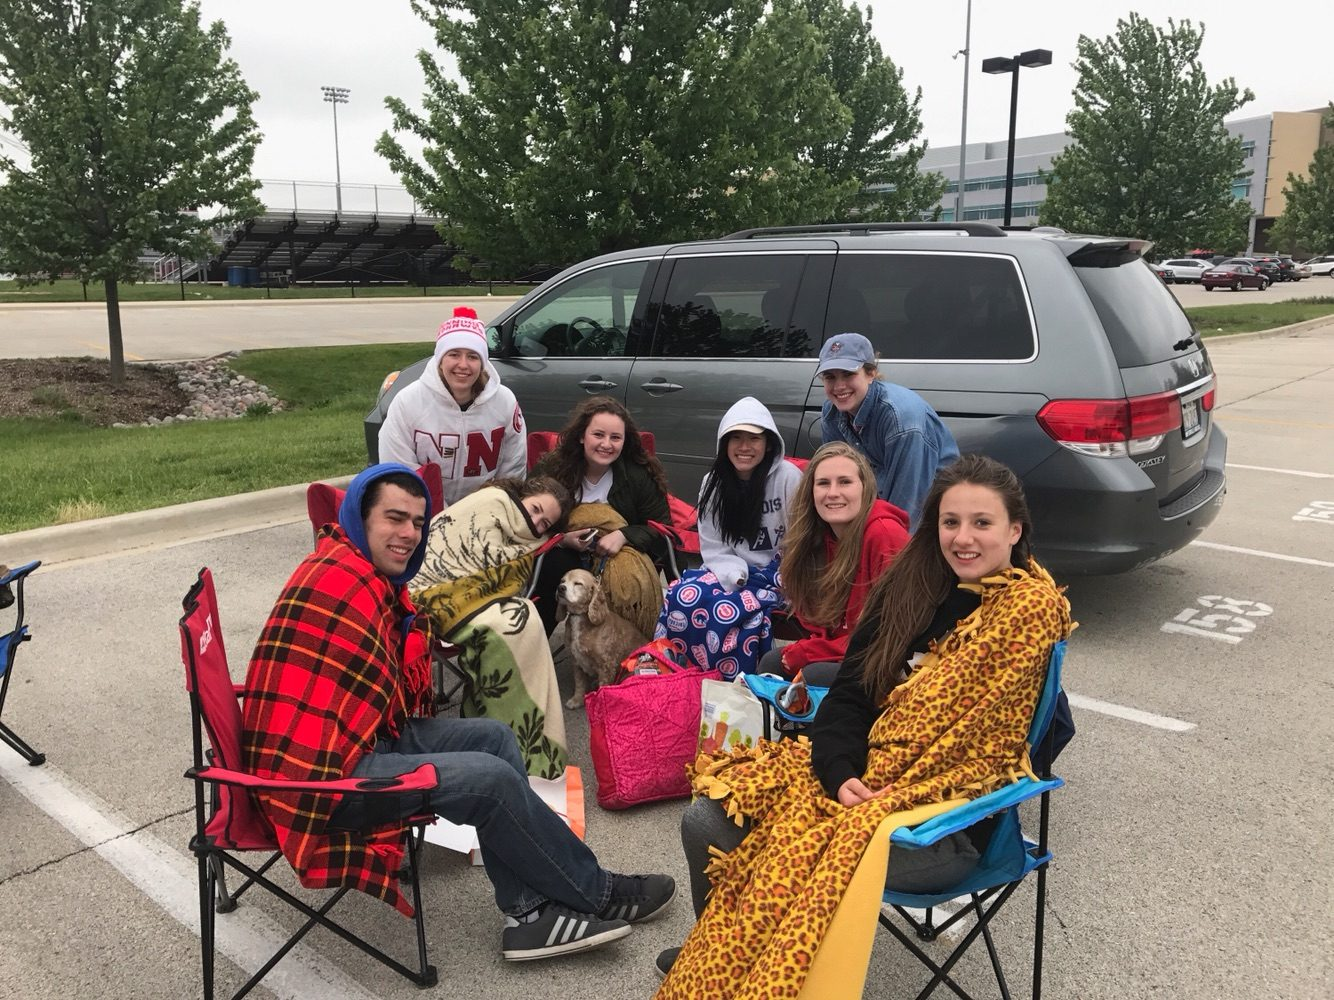 Seniors Aaron Gearhart, Rachel Damge, Anna Loveless, Angela Adamo, Max the dog, Lauren Kainrath, Jane Szymanski, Virginia Aabram and Mary Kelly sit in the senior lot, blocking parking spots and preventing underclassmen from parking.